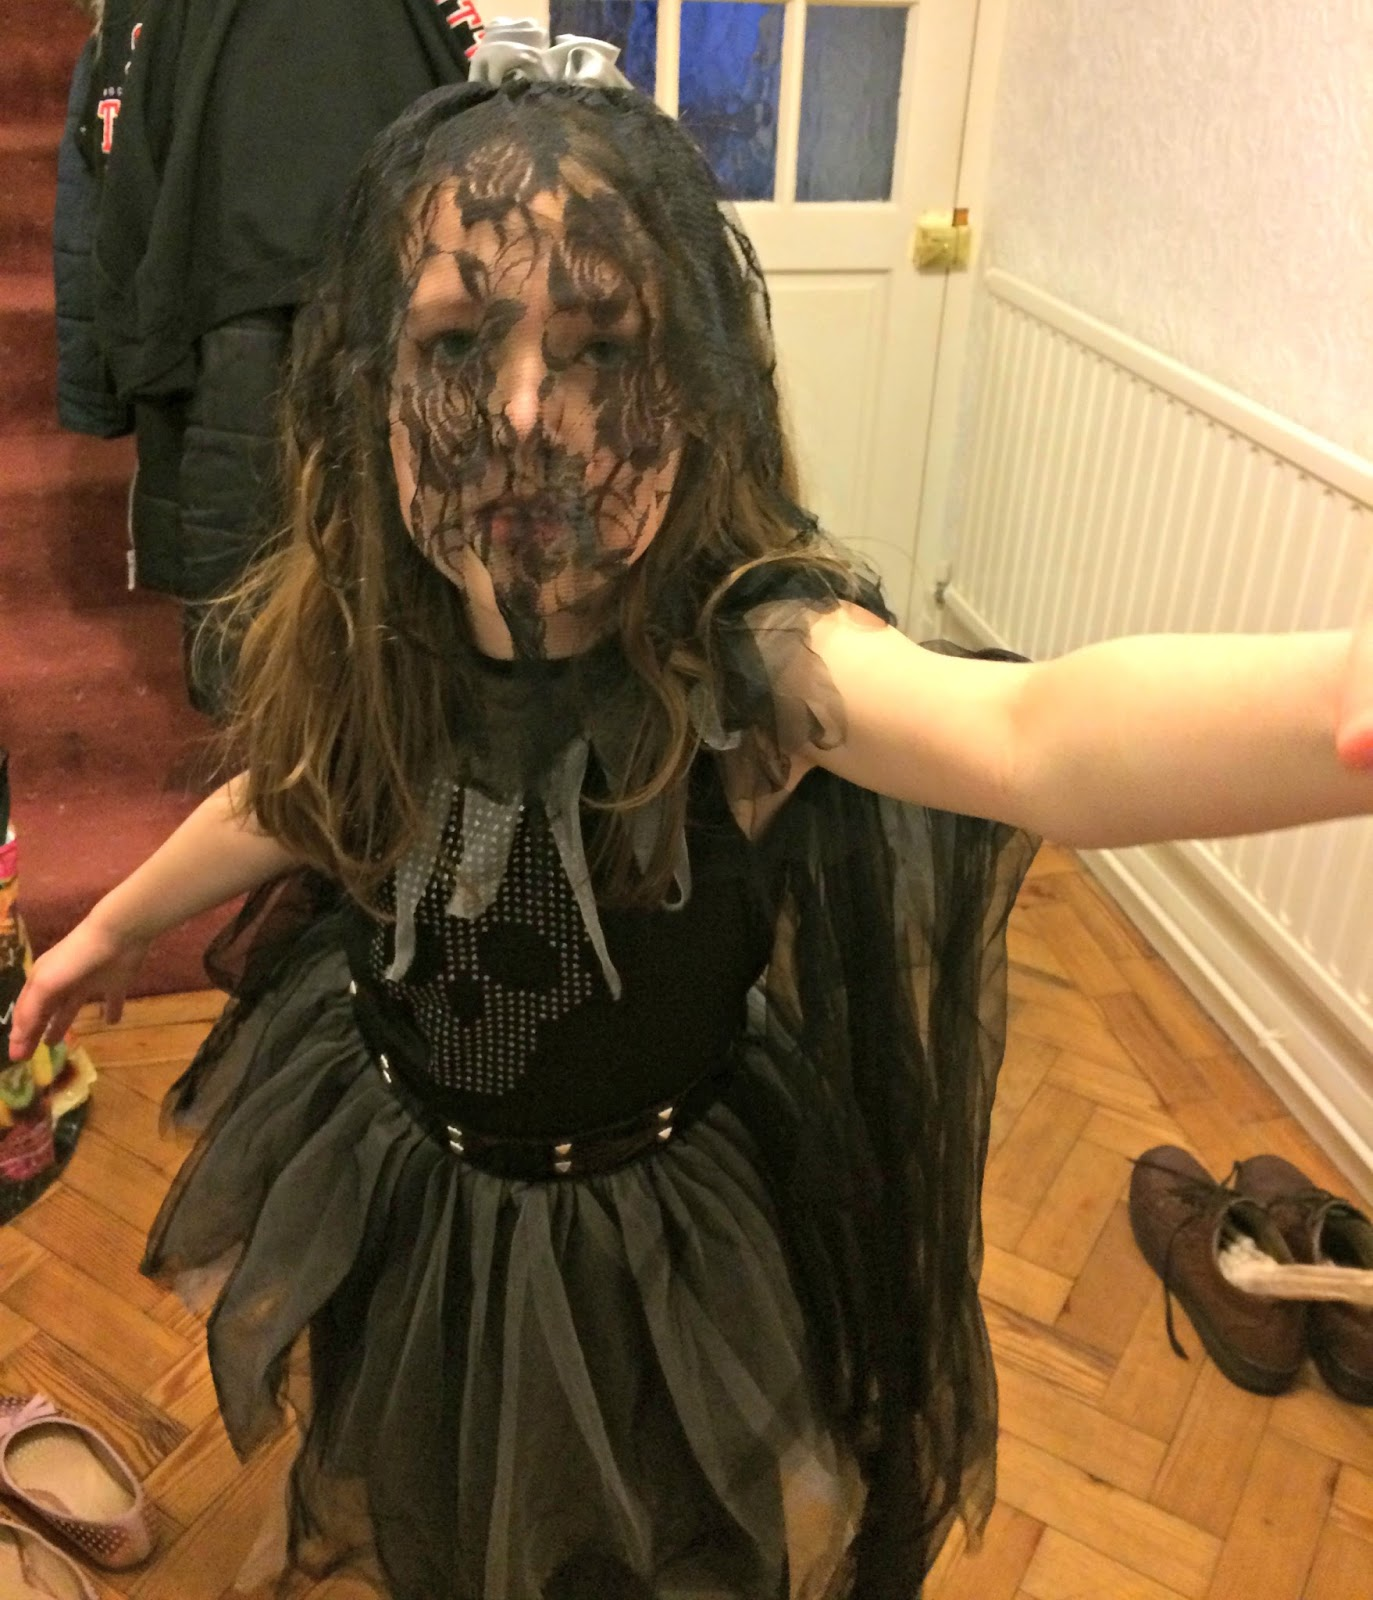 Caitlin in gothic bride fancy dress, Halloween 2016